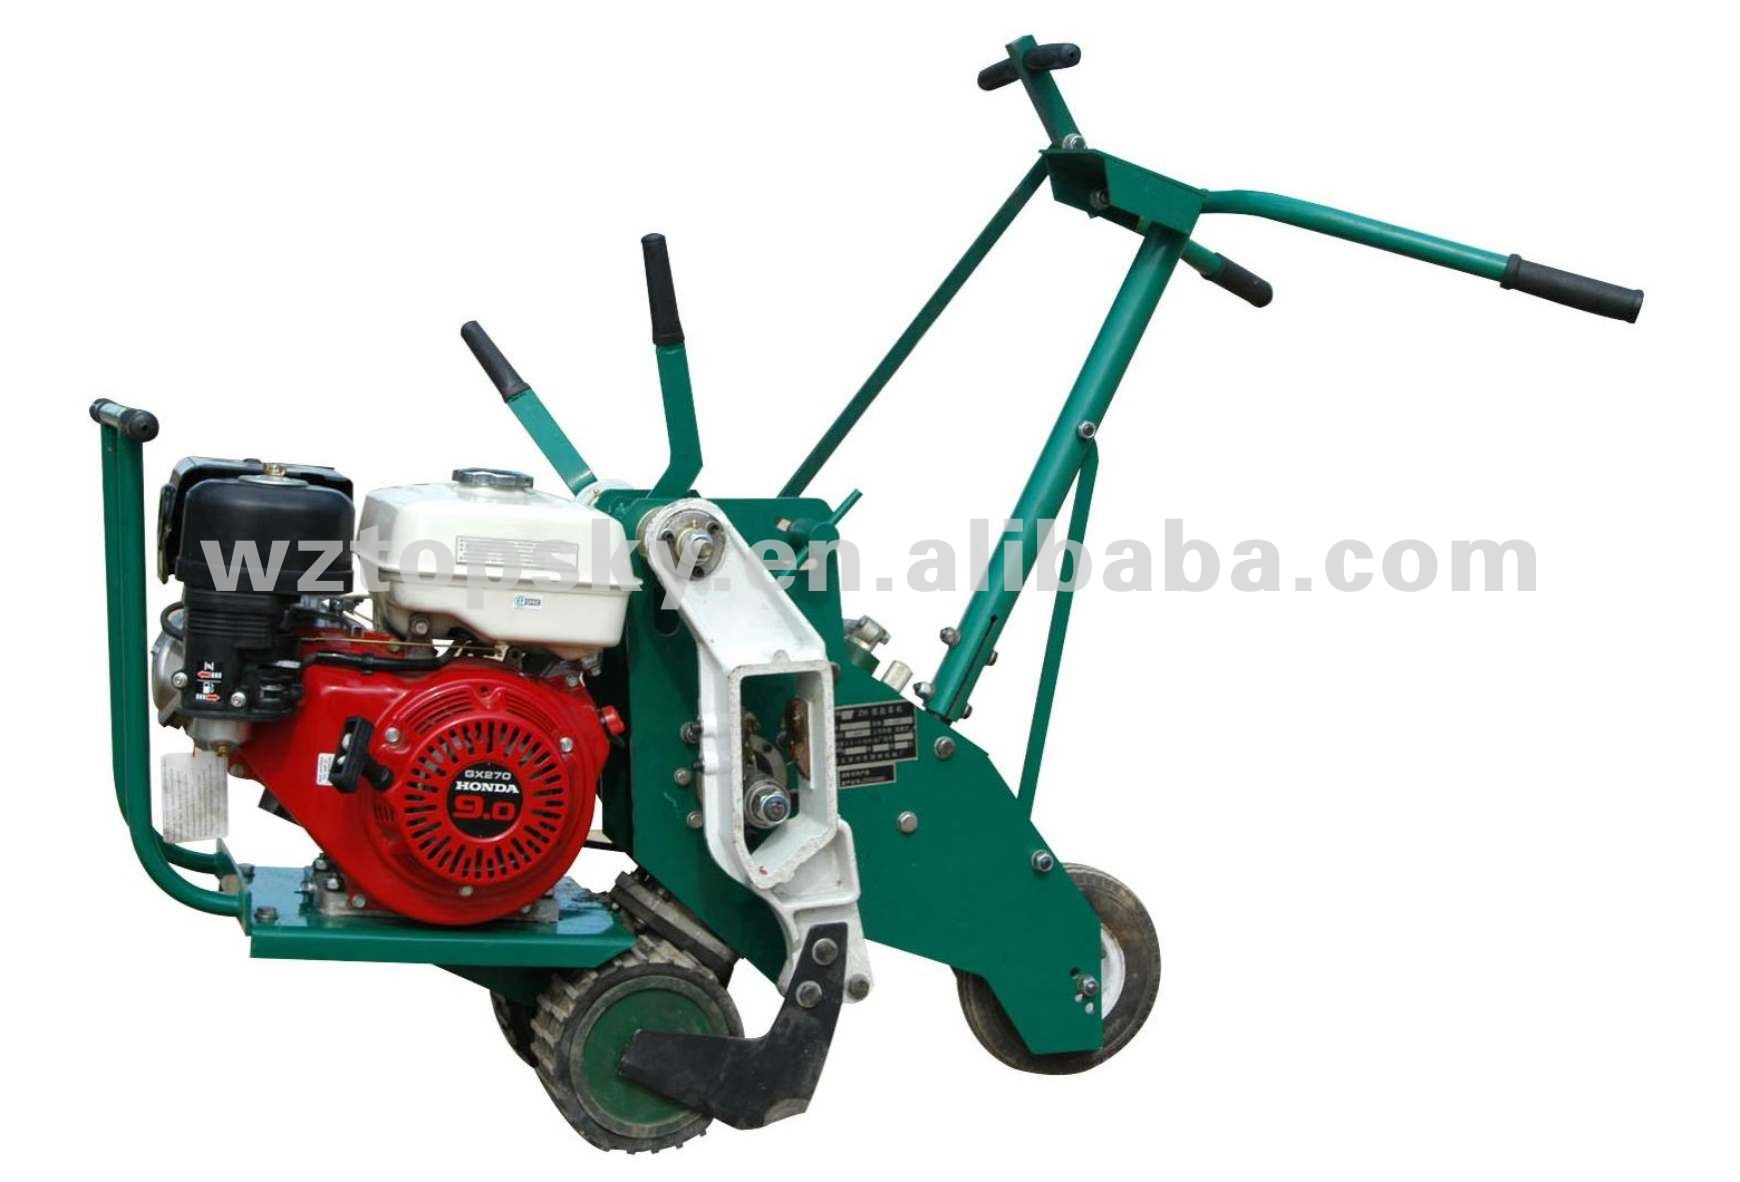 sod cutter machine